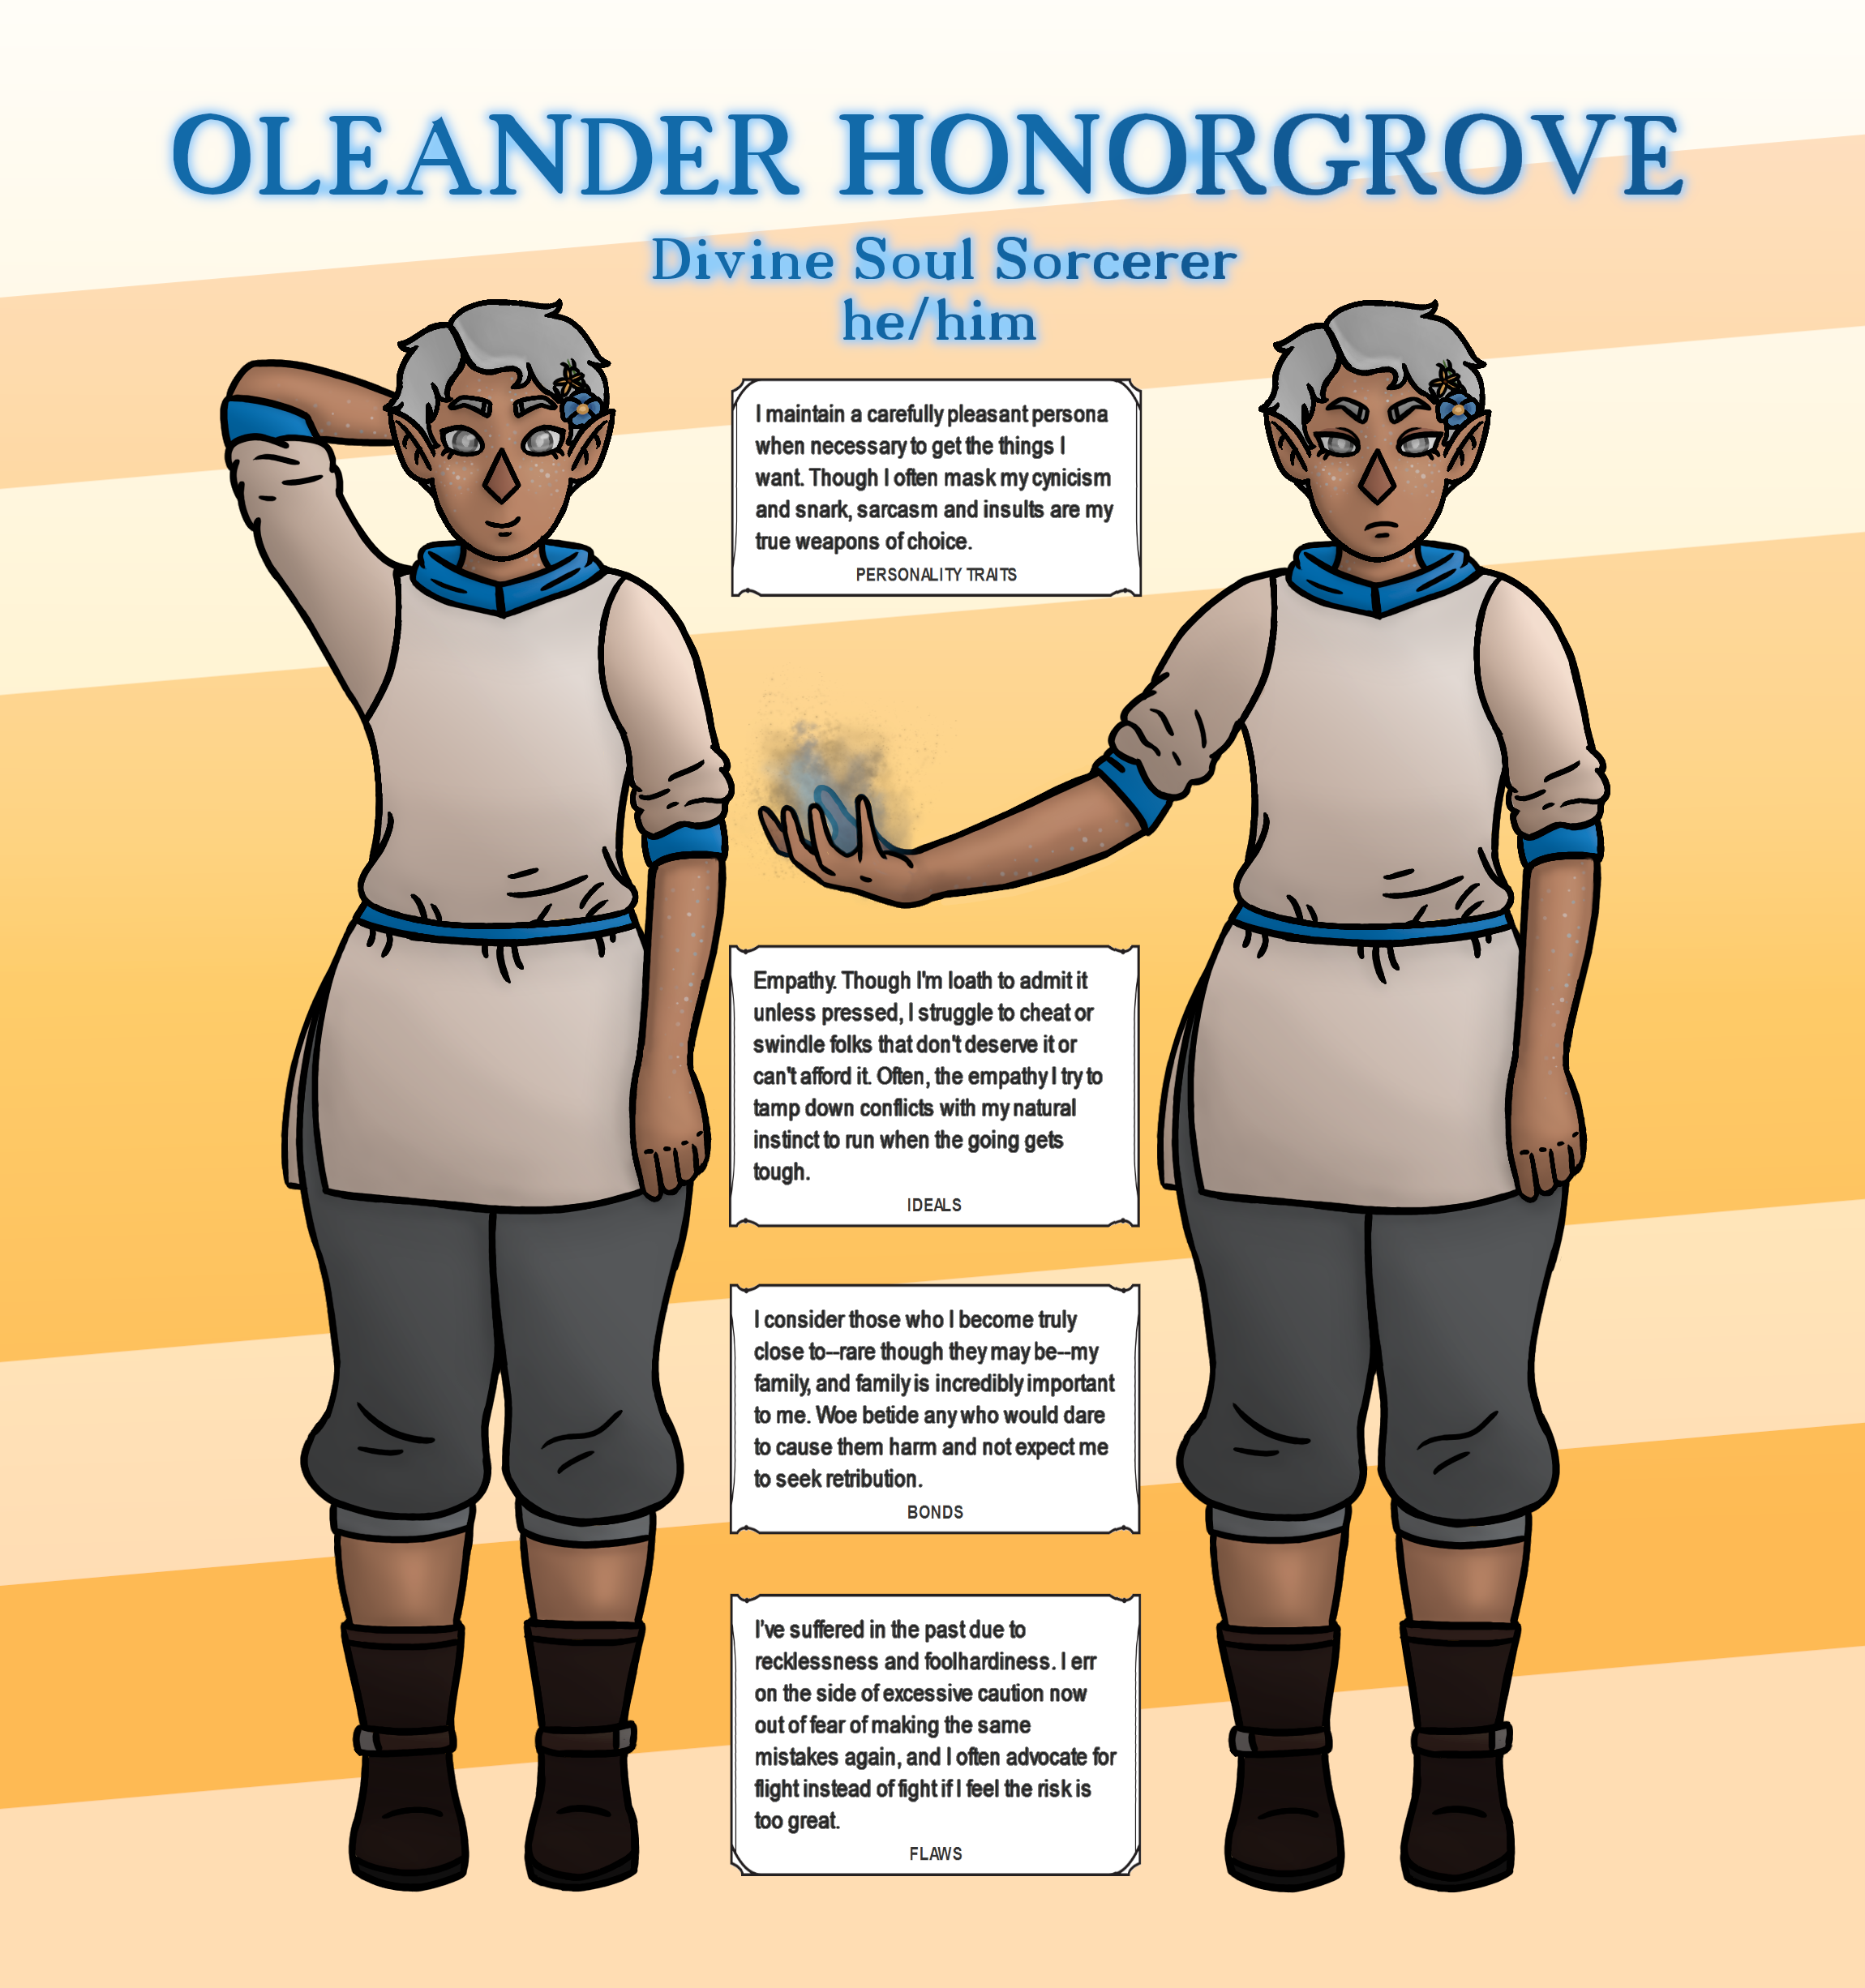 Oleander Honorgrove Divine Soul Sorcerer By Flipwix On Deviantart Submitted 11 months ago by mb99z. oleander honorgrove divine soul